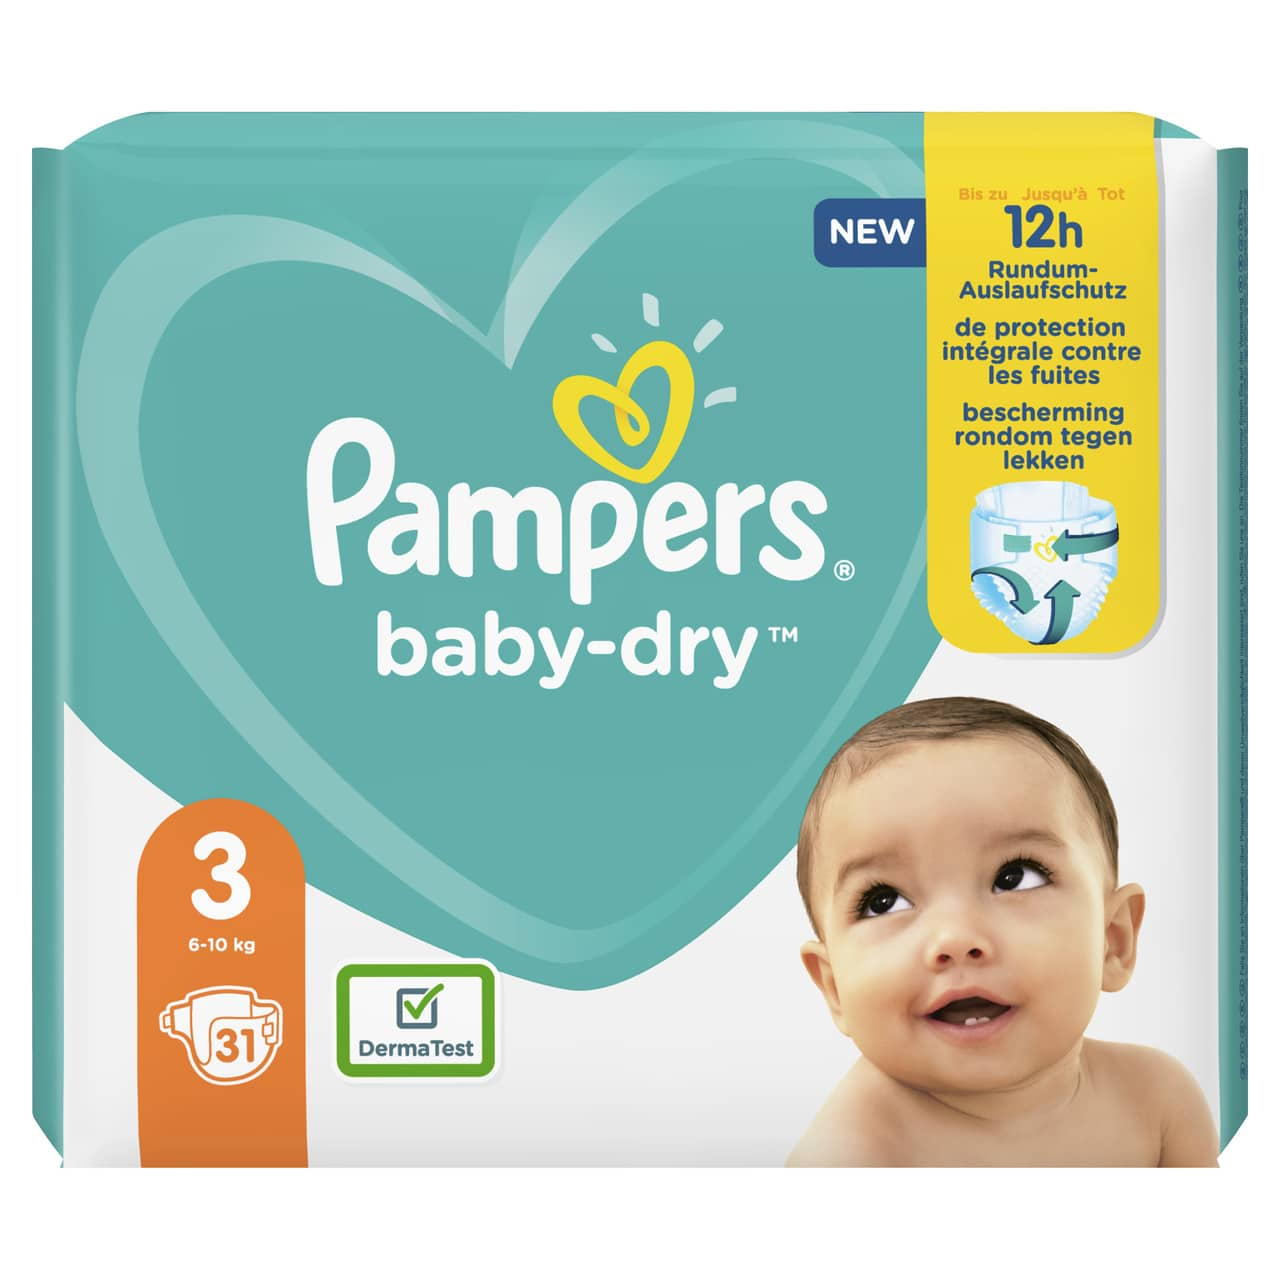 PAMPERS CARRY PACK BABYDRY  SIZE 3 (By 31 nappies) (NEW)